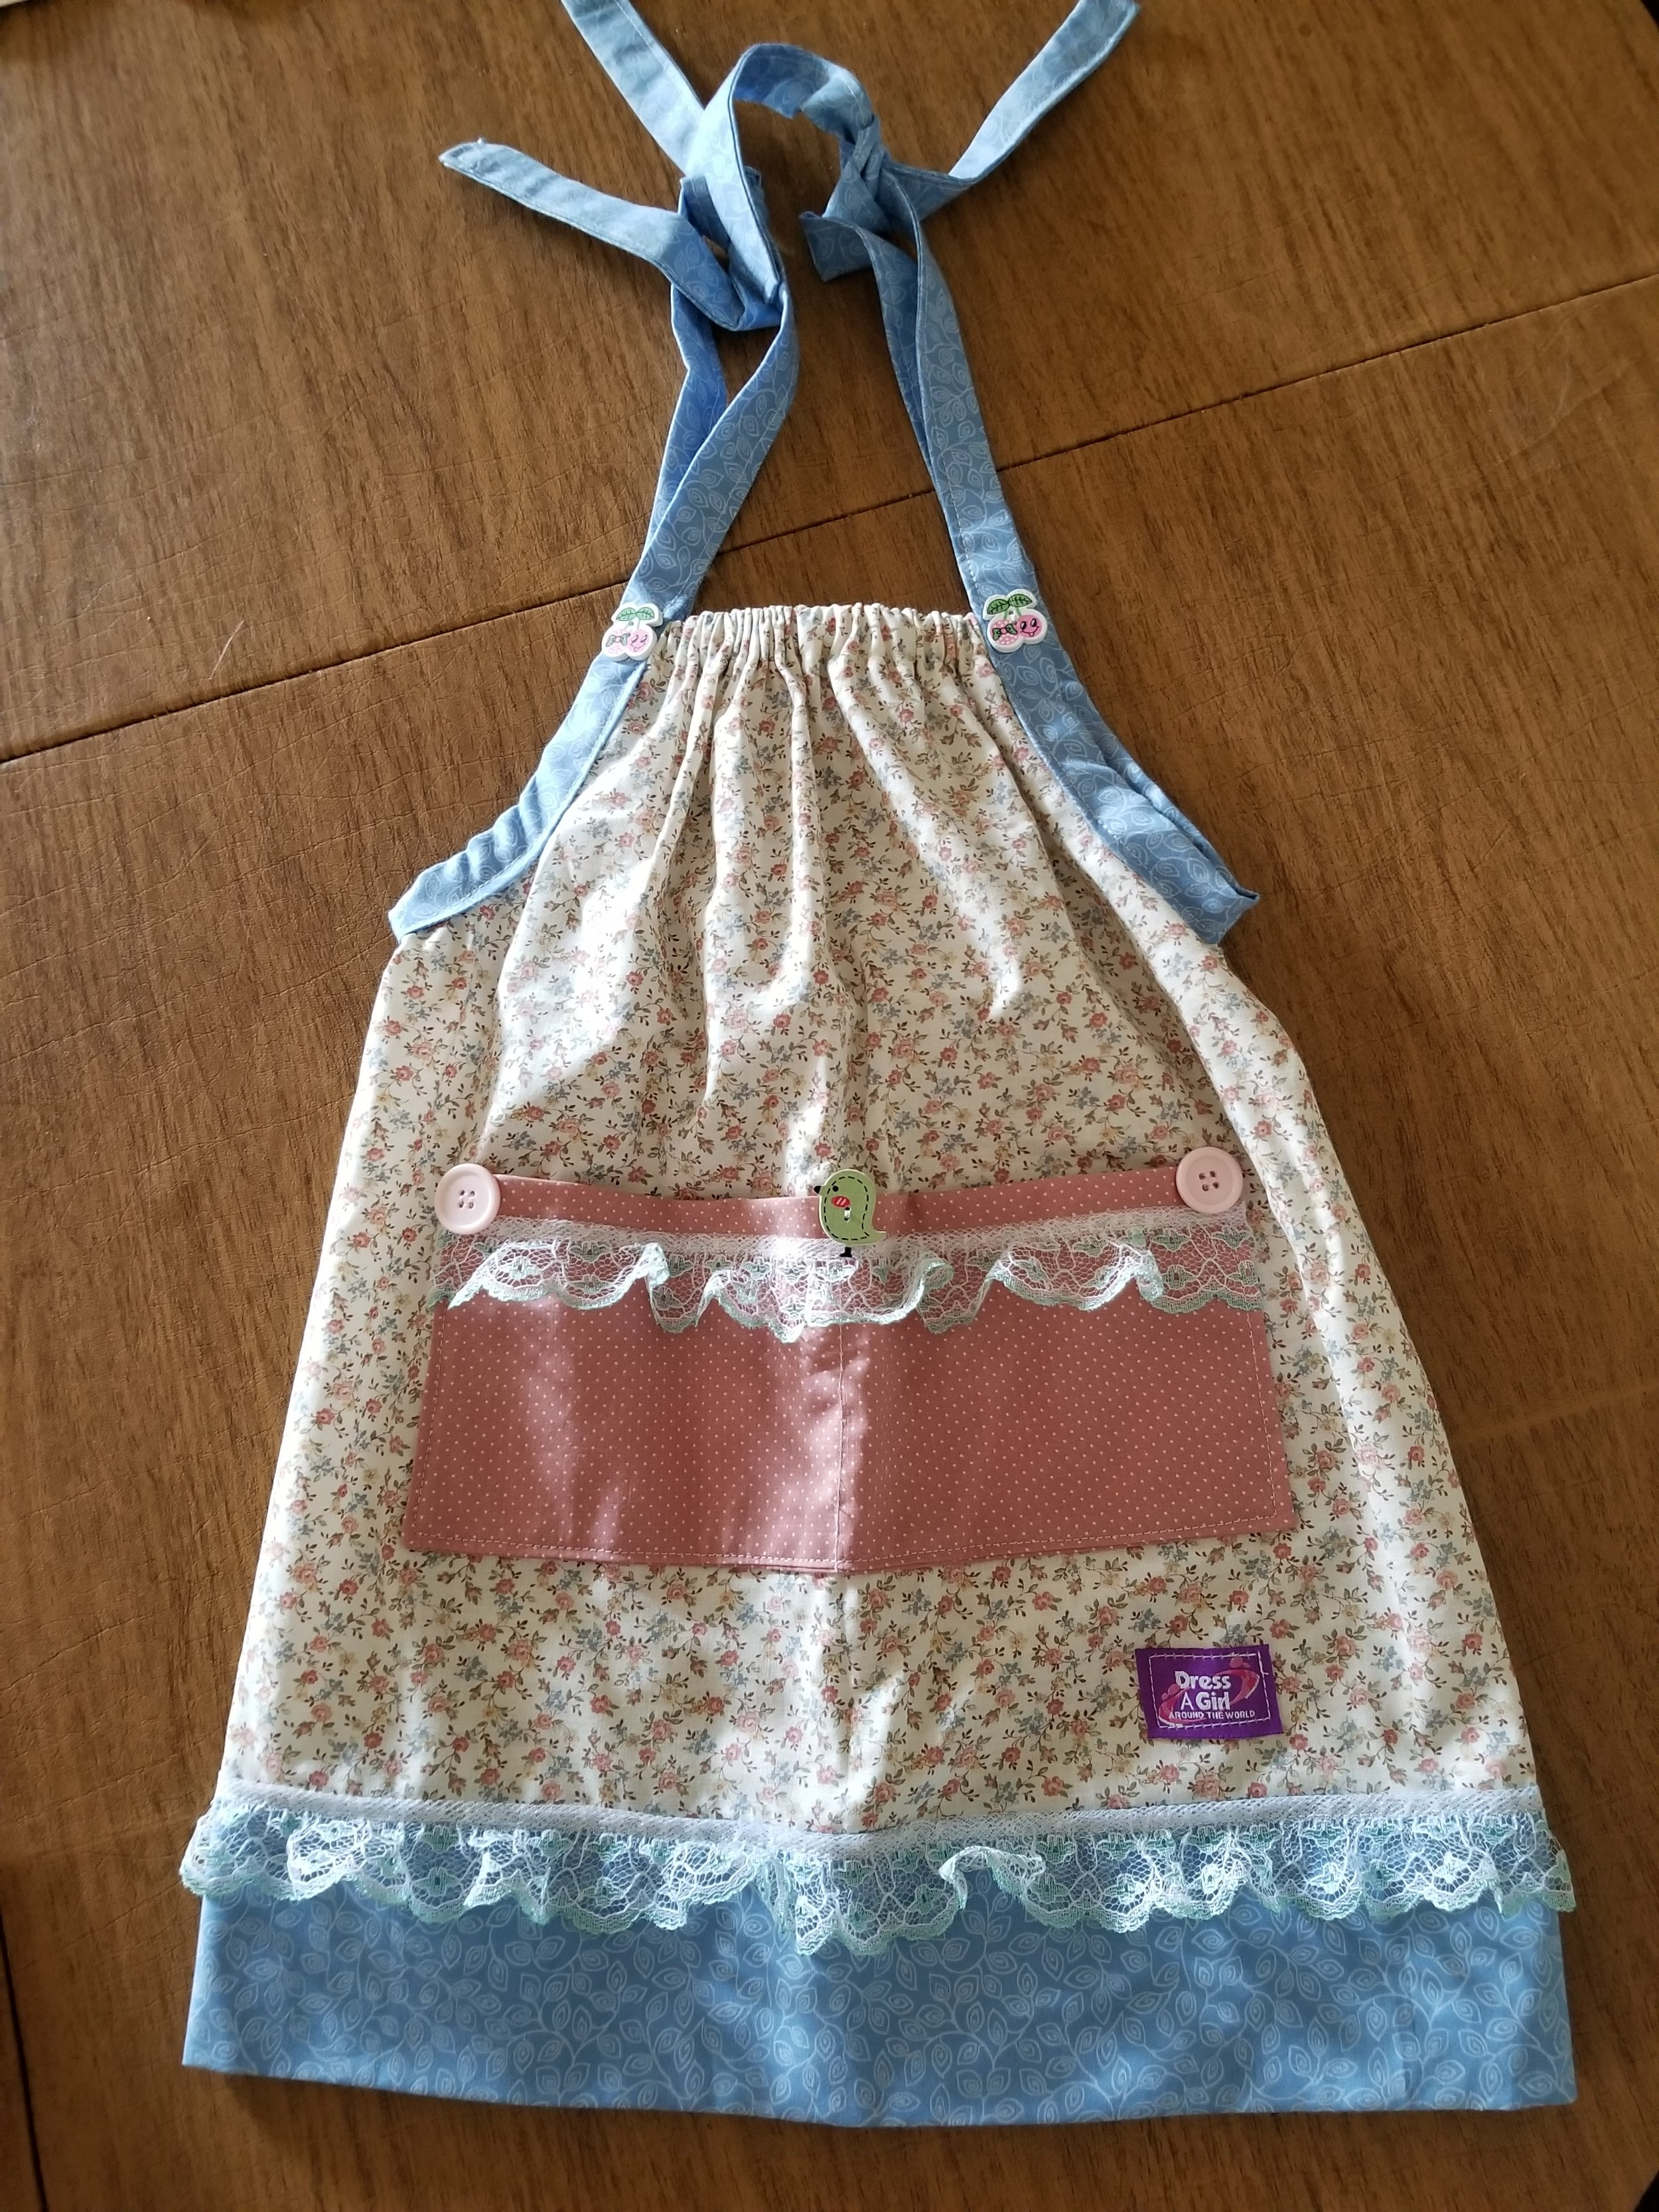 One adorable dress sewn at our sew days.